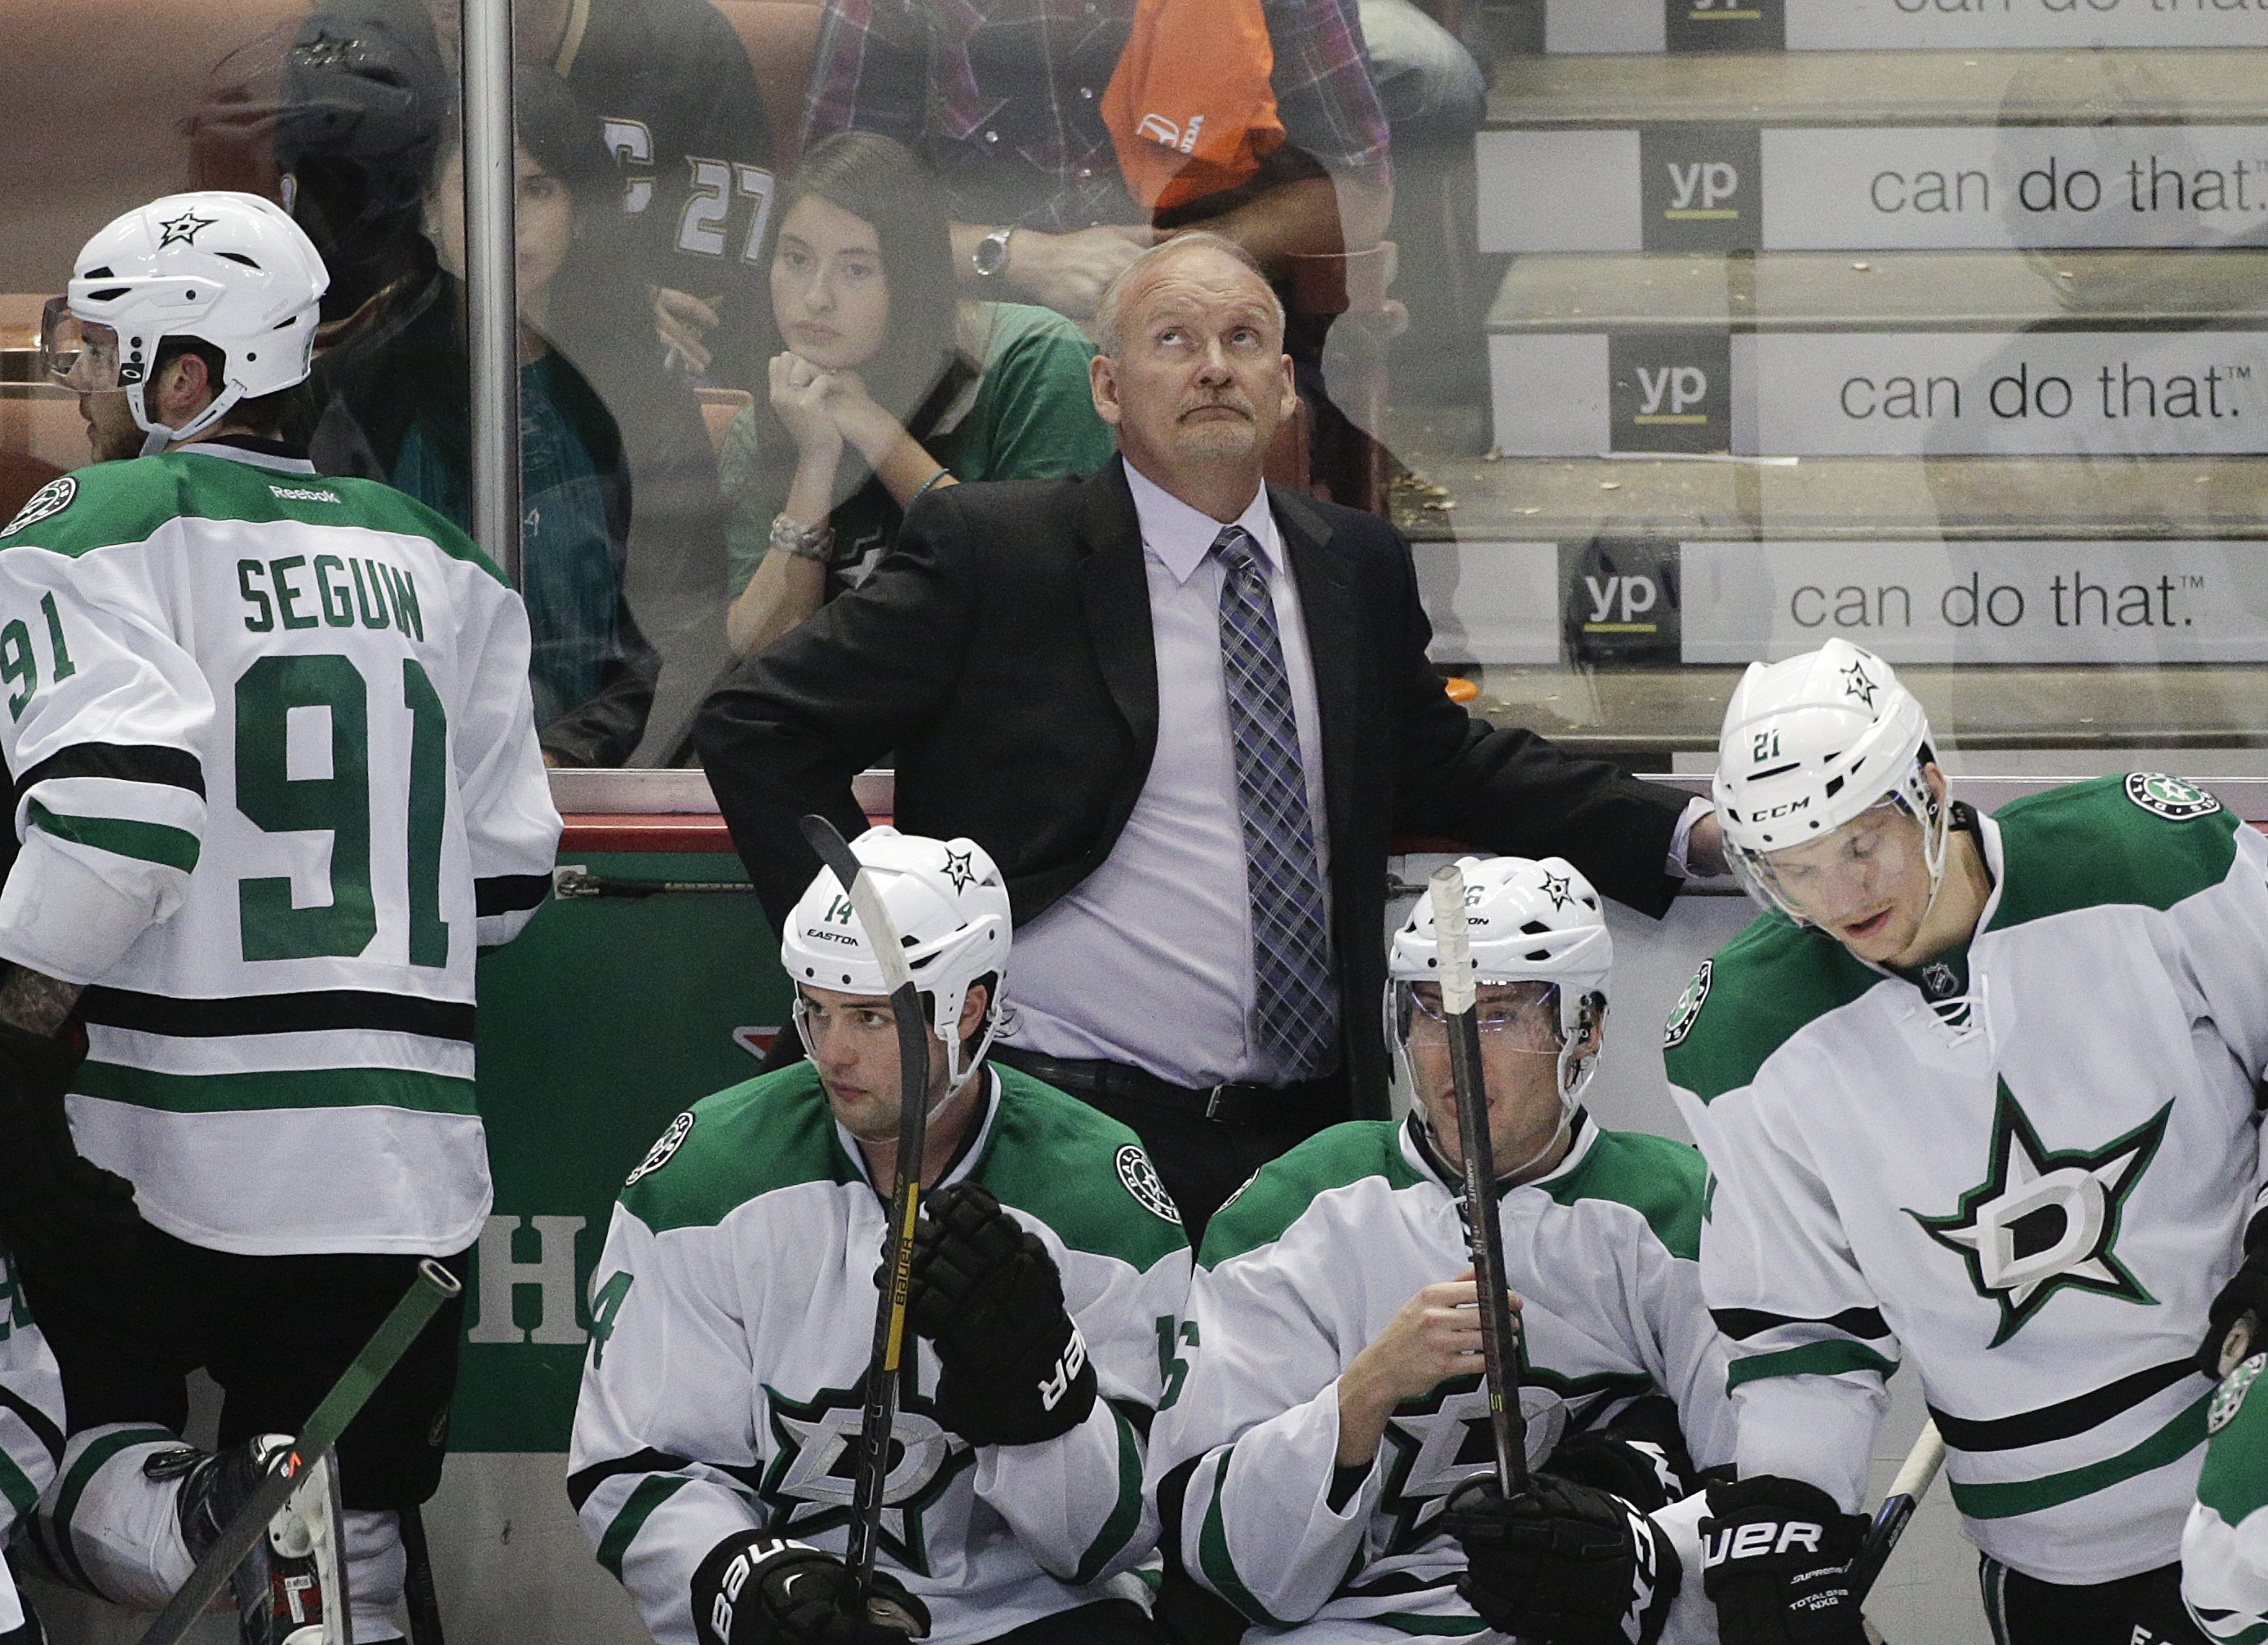 Former Sabres coach Lindy Ruff led Dallas into the playoffs and helped them back from a 2-0 deficit to square up the series with the Anaheim.